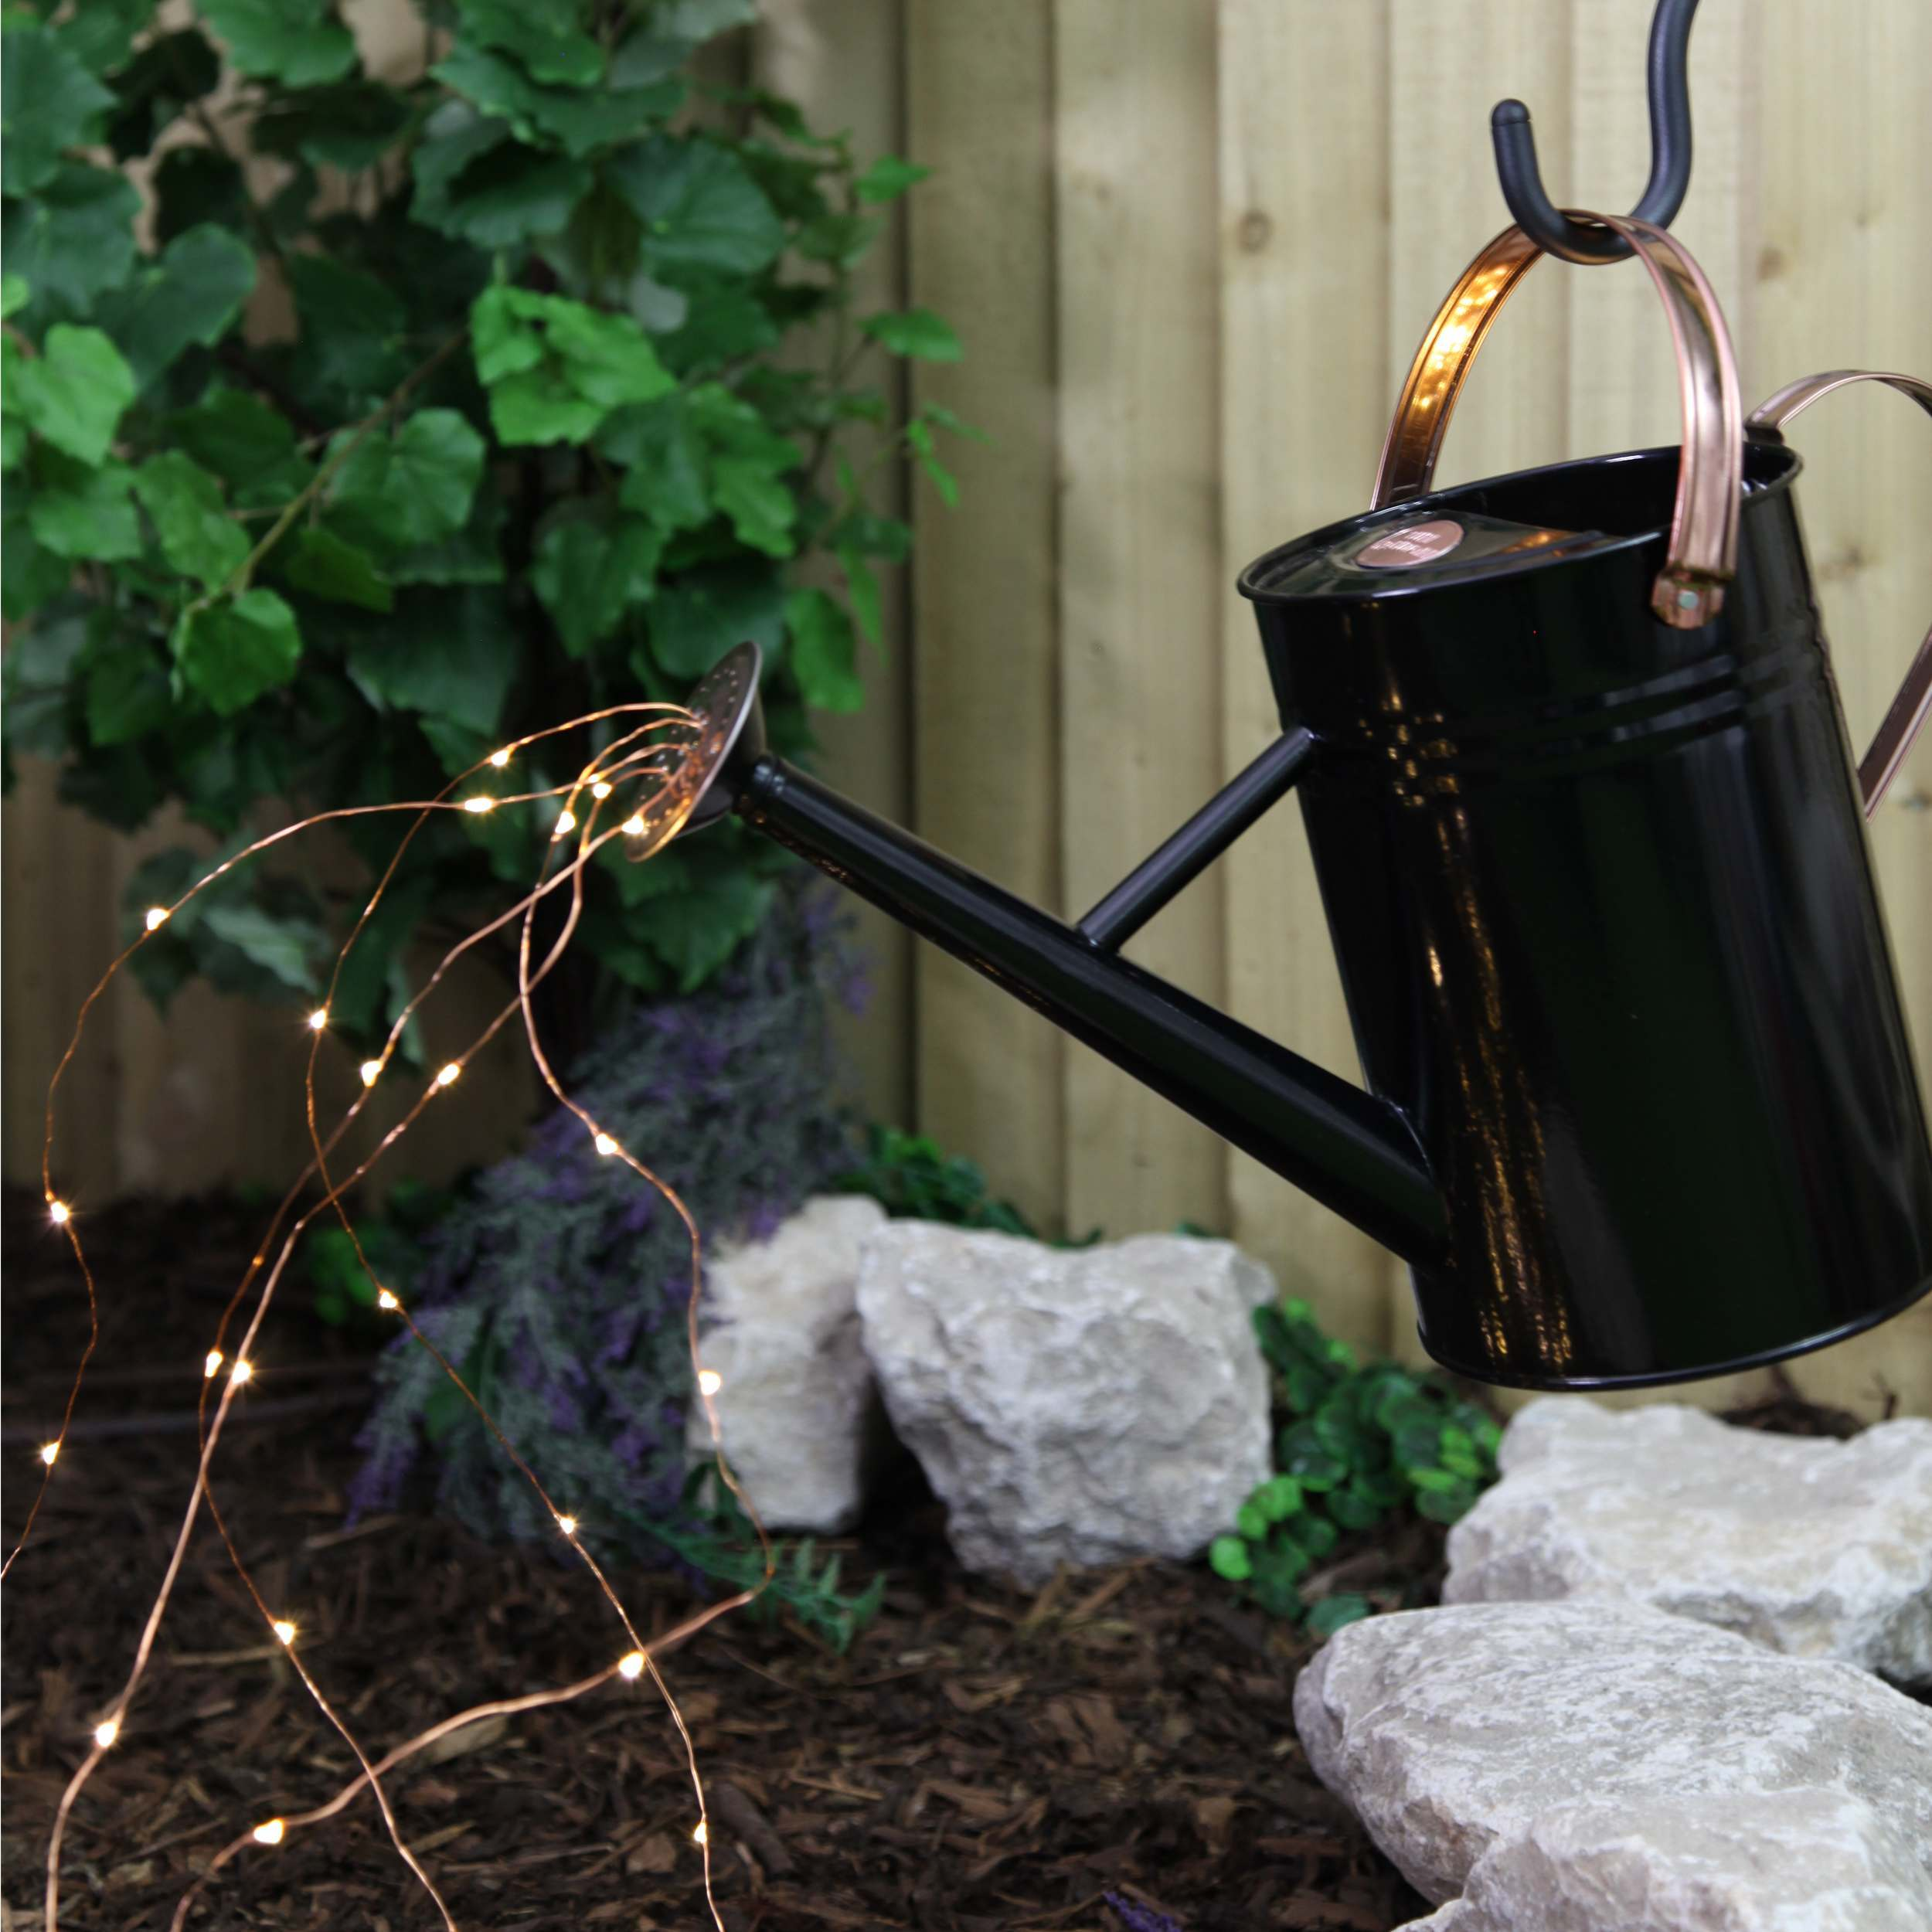 Make your own watering can light